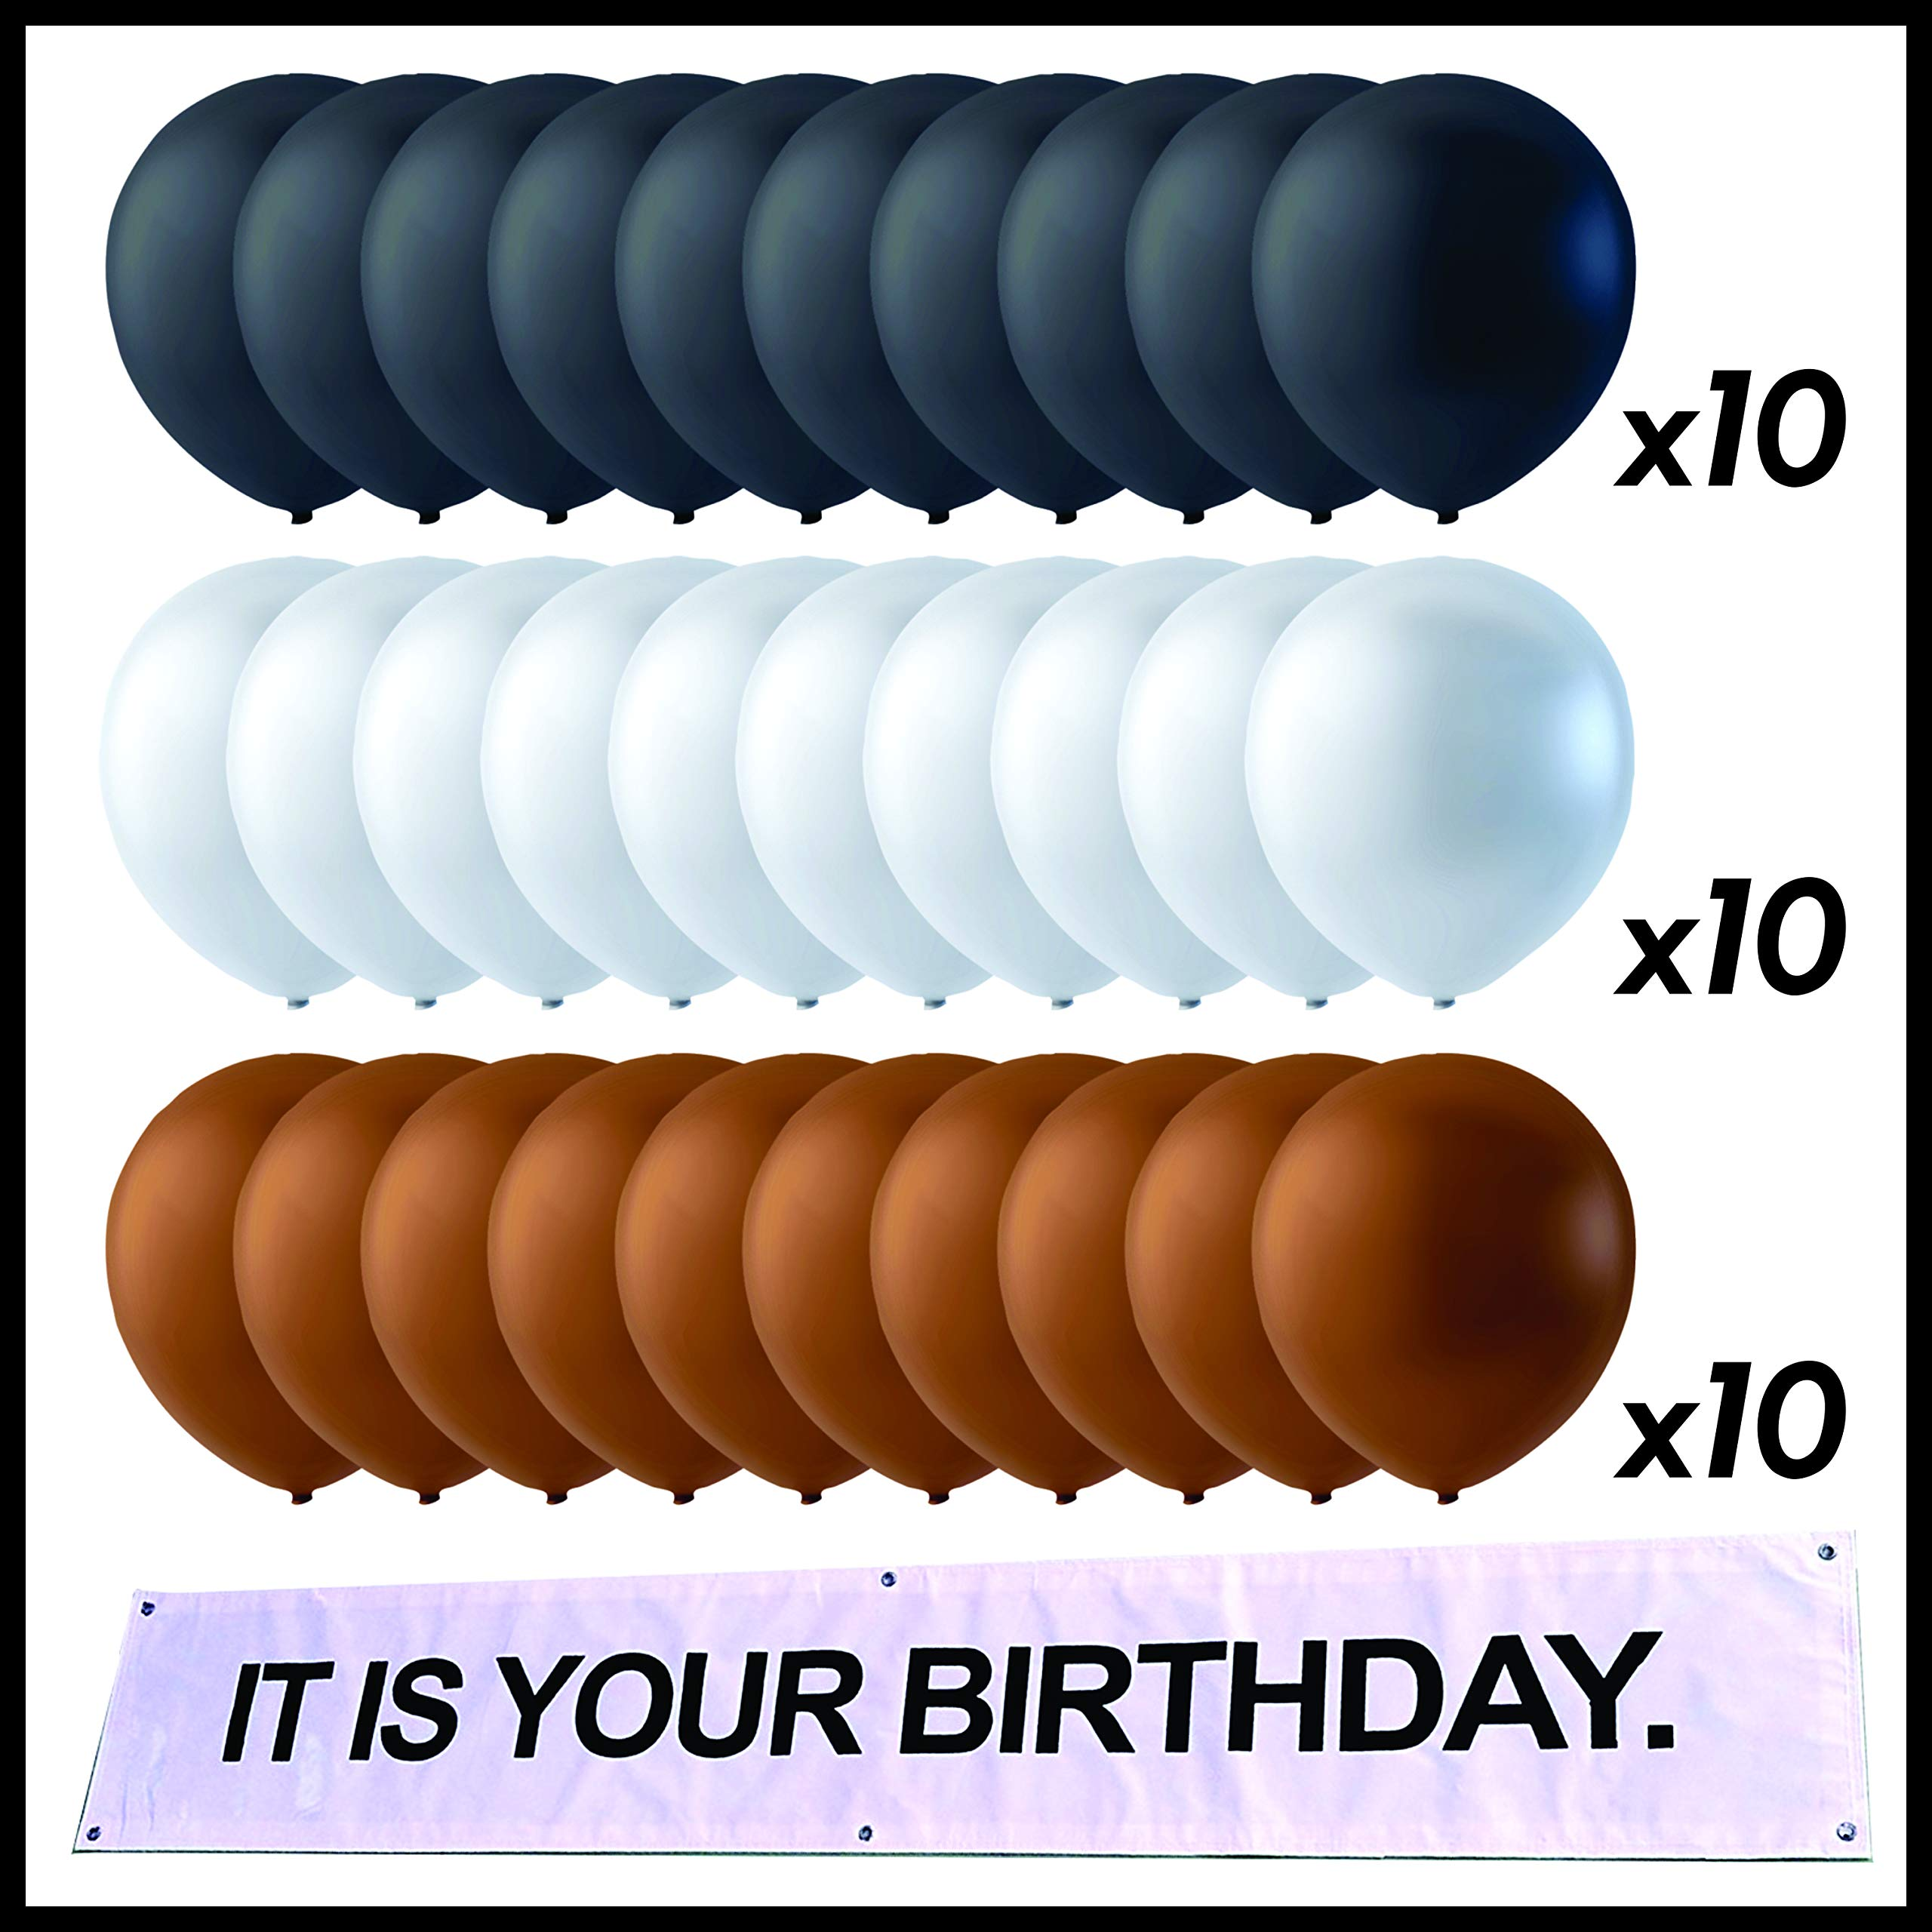 IT is Your Birthday. 1'x6' Banner and (30) Balloons, Brown, Gray, and Black